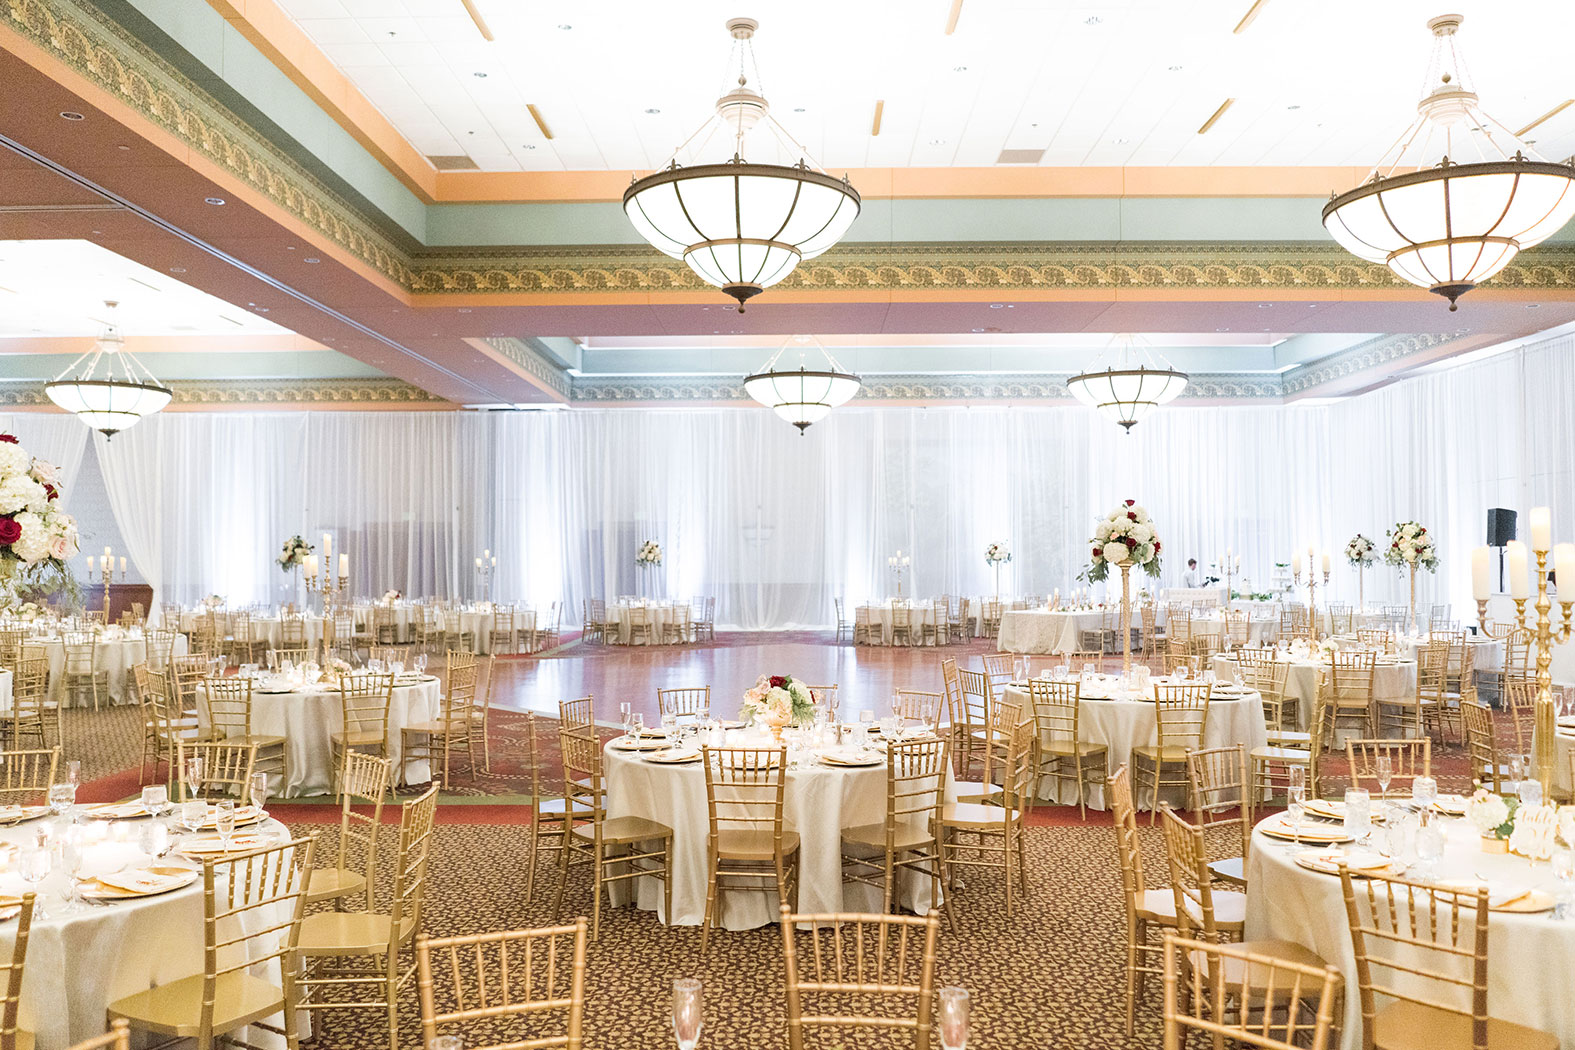 Great Hall event space at Chateau on the Lake in New York City, NYC, NY/NJ Area